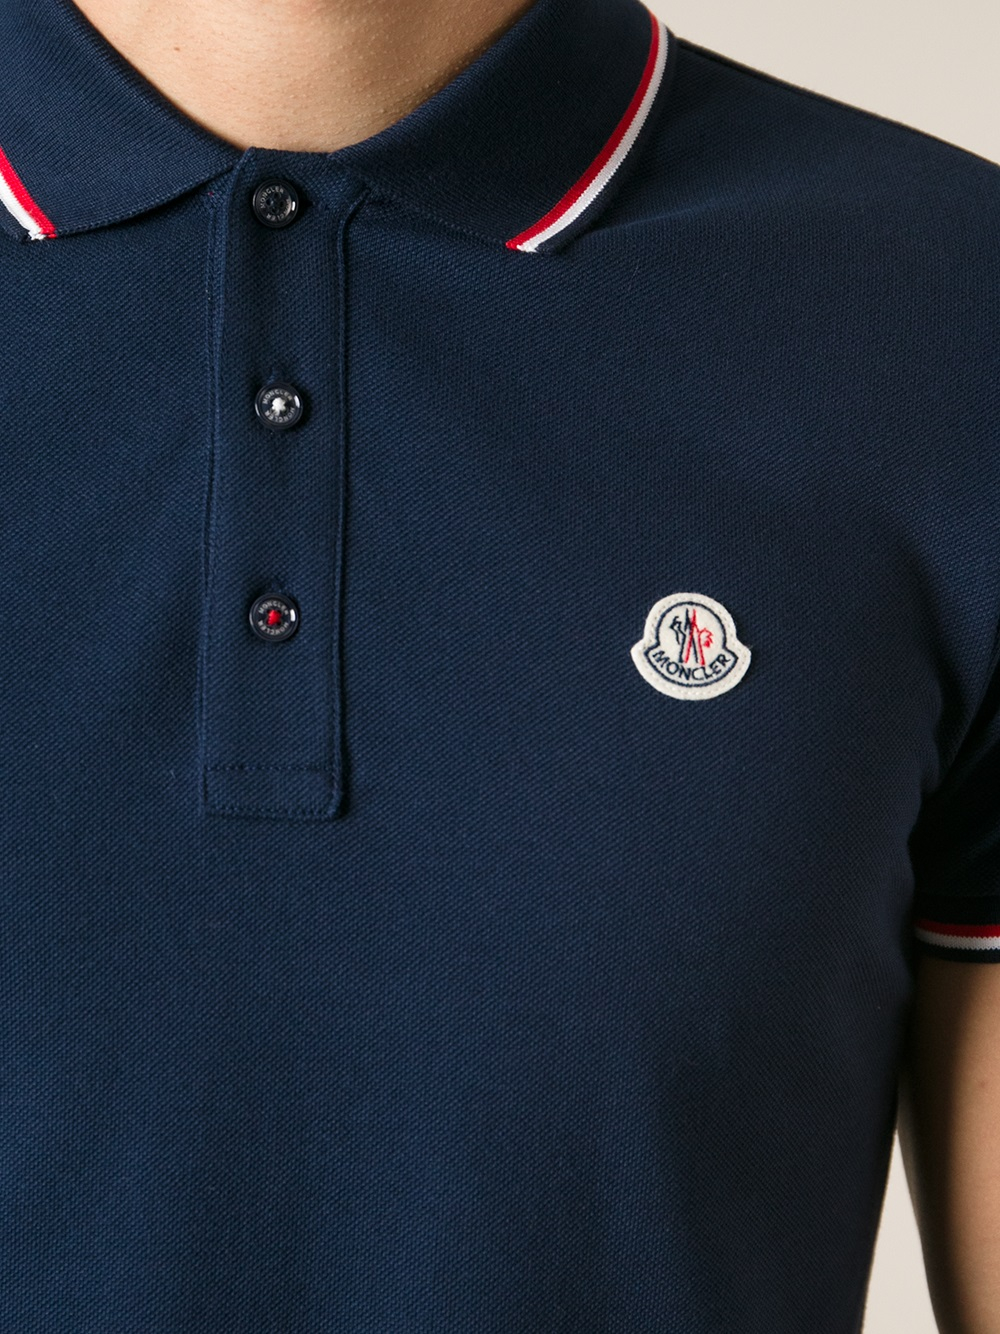 moncler classic polo shirt in blue for men lyst. Black Bedroom Furniture Sets. Home Design Ideas